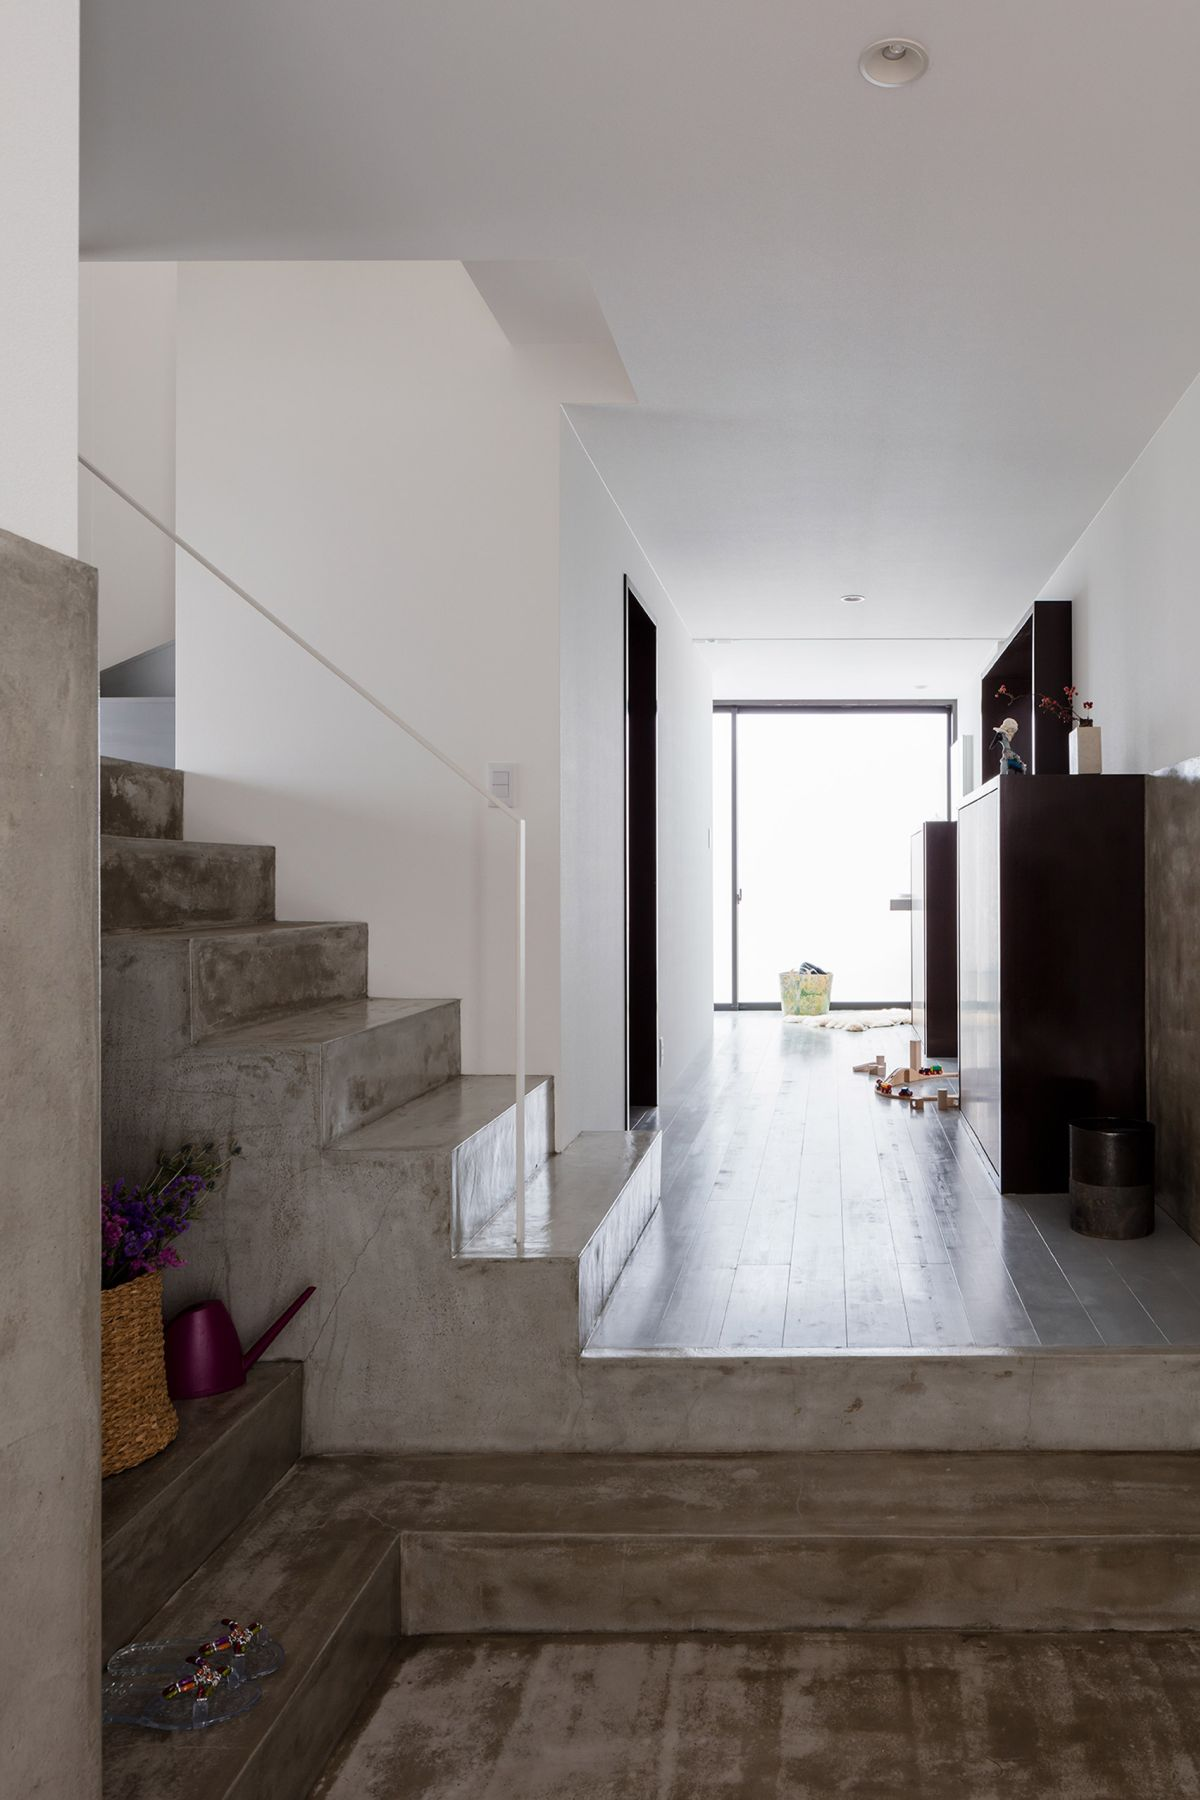 How Does A Modern Japanese House Look Like 6 Interesting Design Ideas